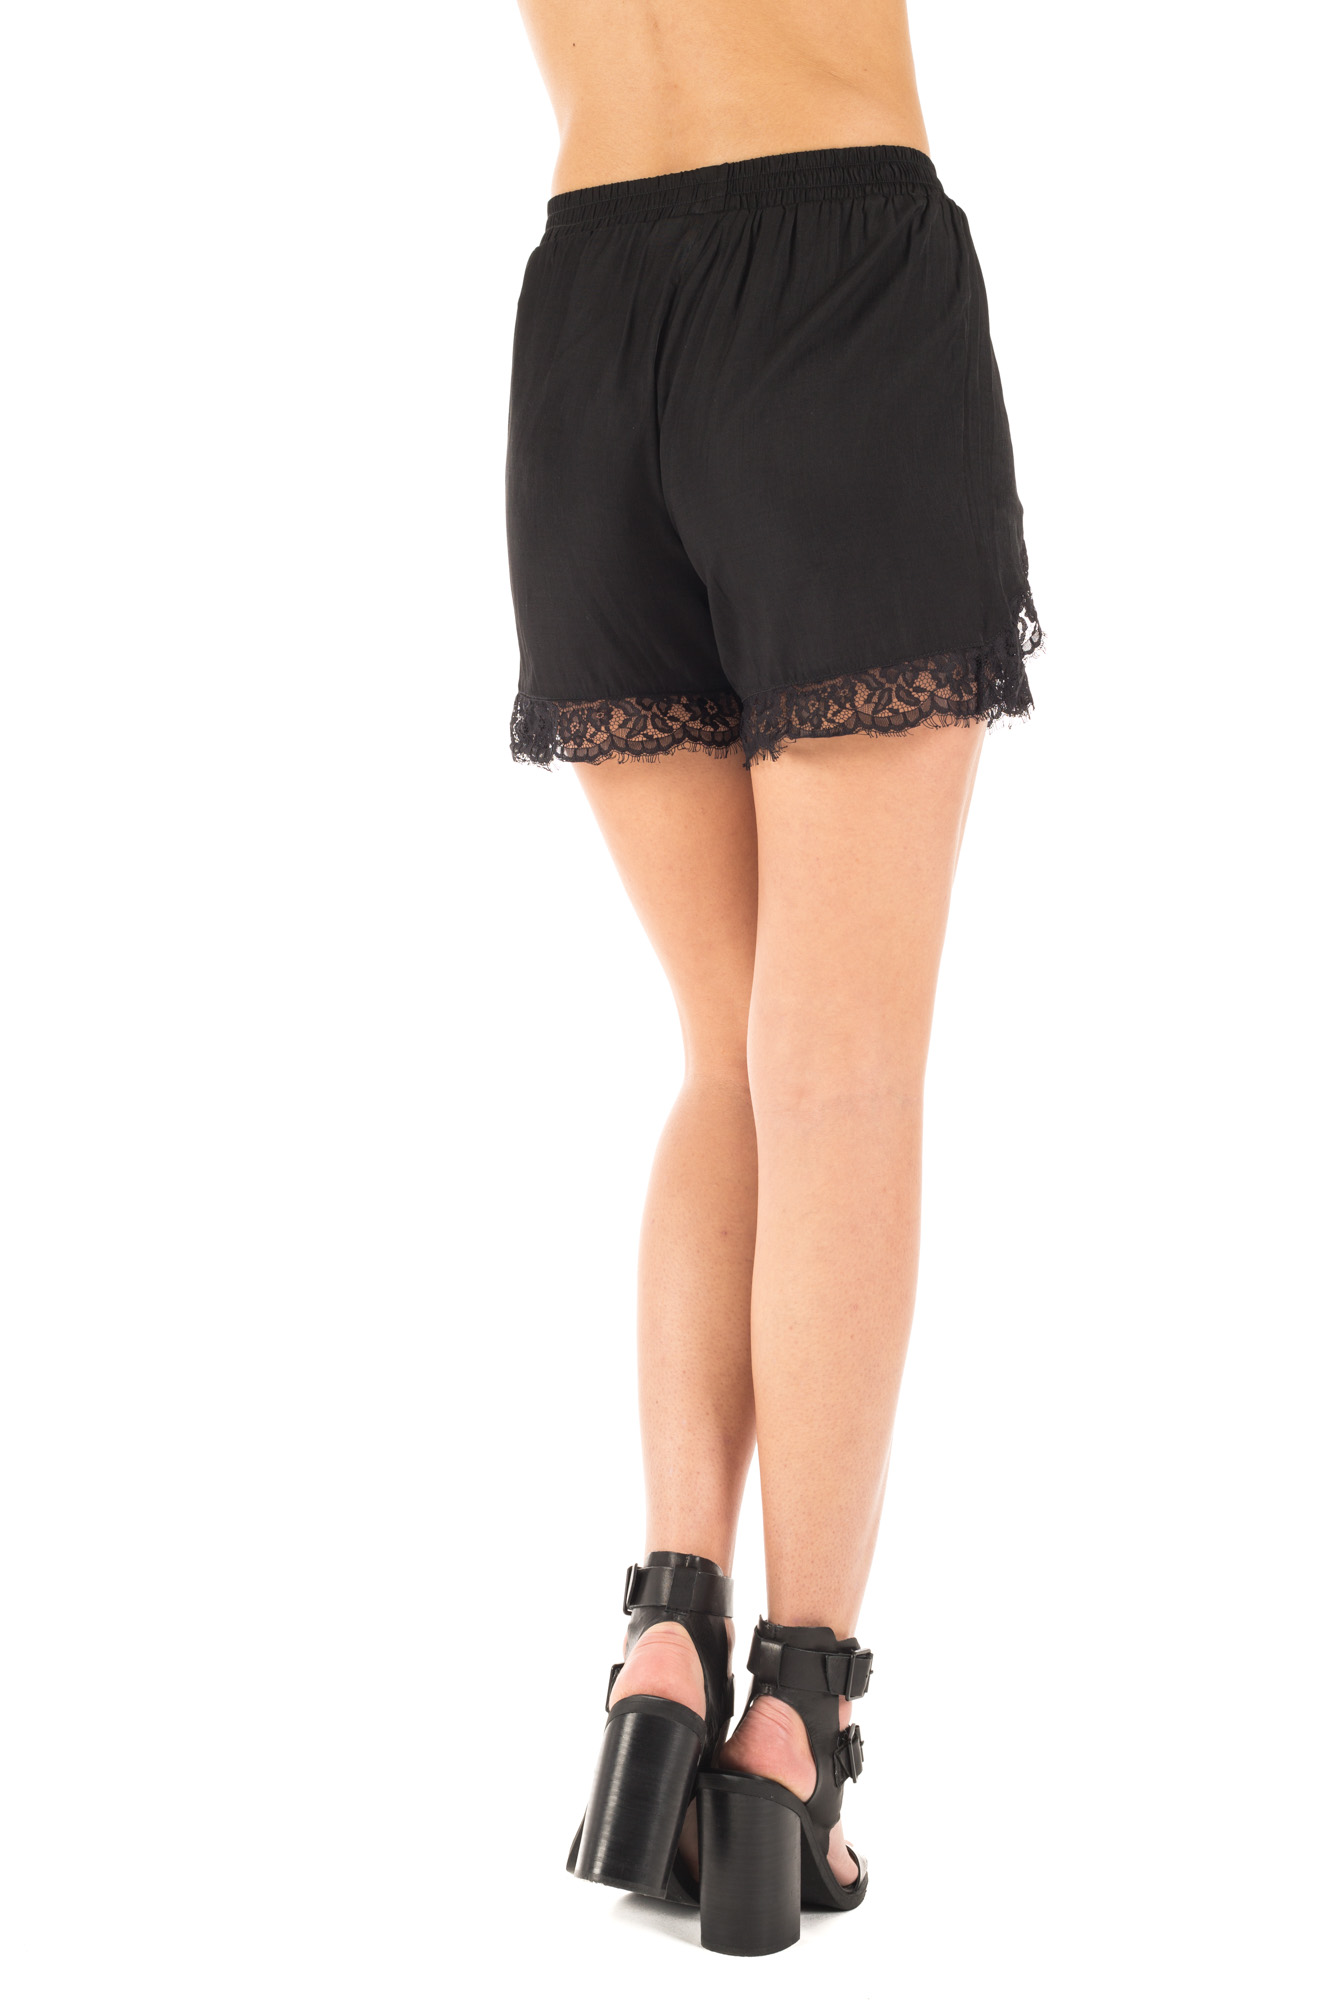 Minimum - Shorts with lace buttom cuff